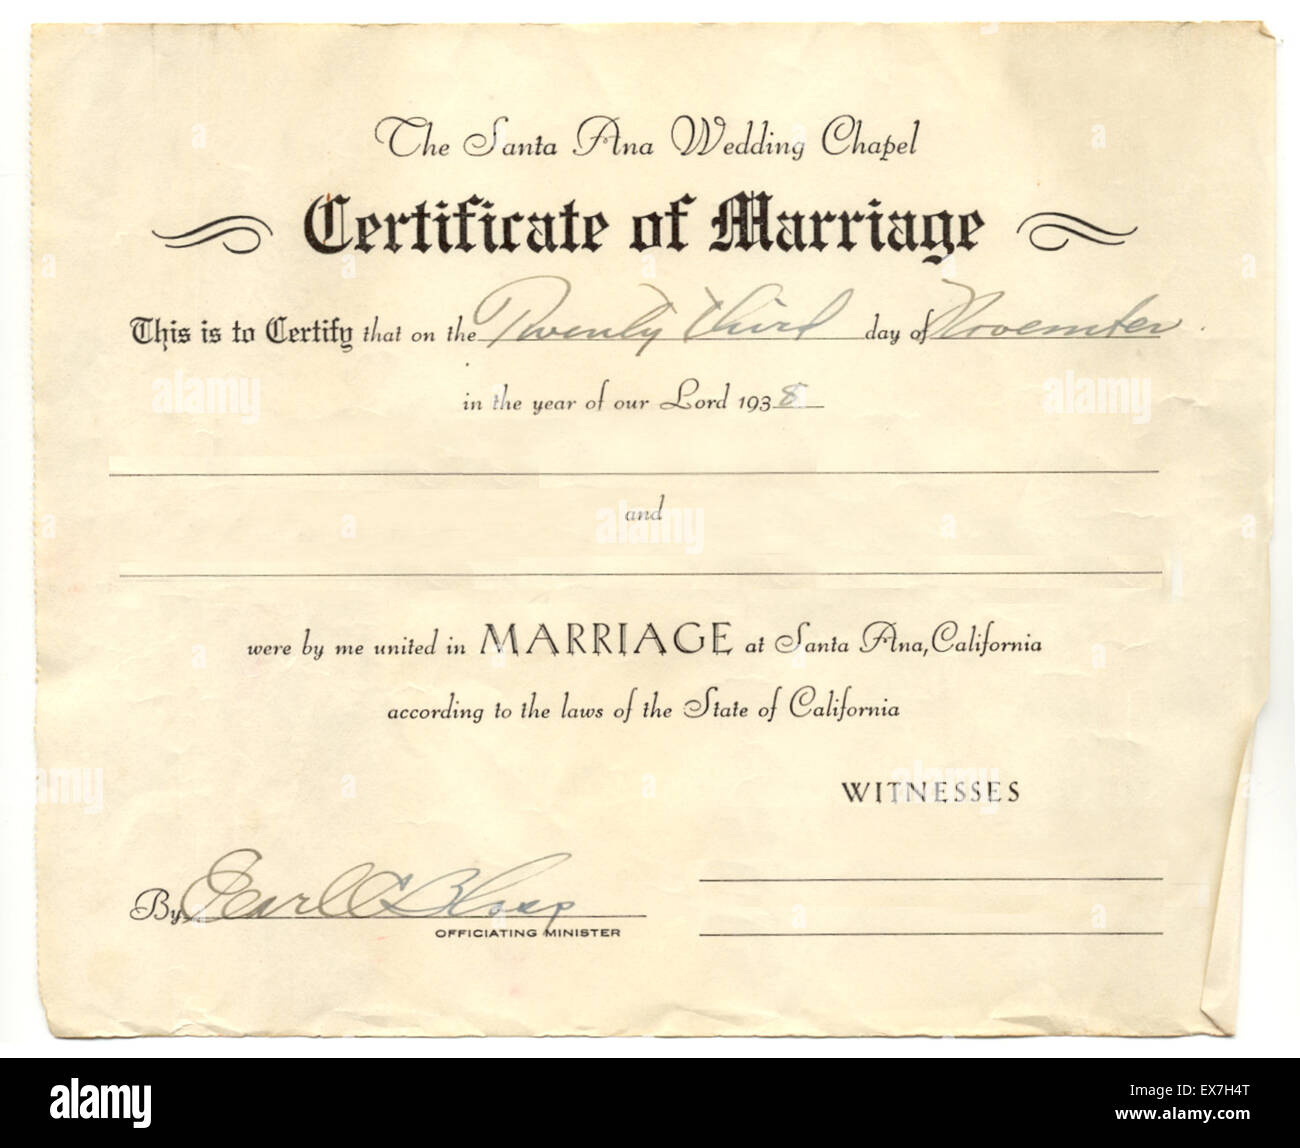 Premarital counseling certificate of completion template choice water baptism certificate template choice image templates oklahoma premarital counseling certificate template requirements marriage laws marriage xflitez Choice Image